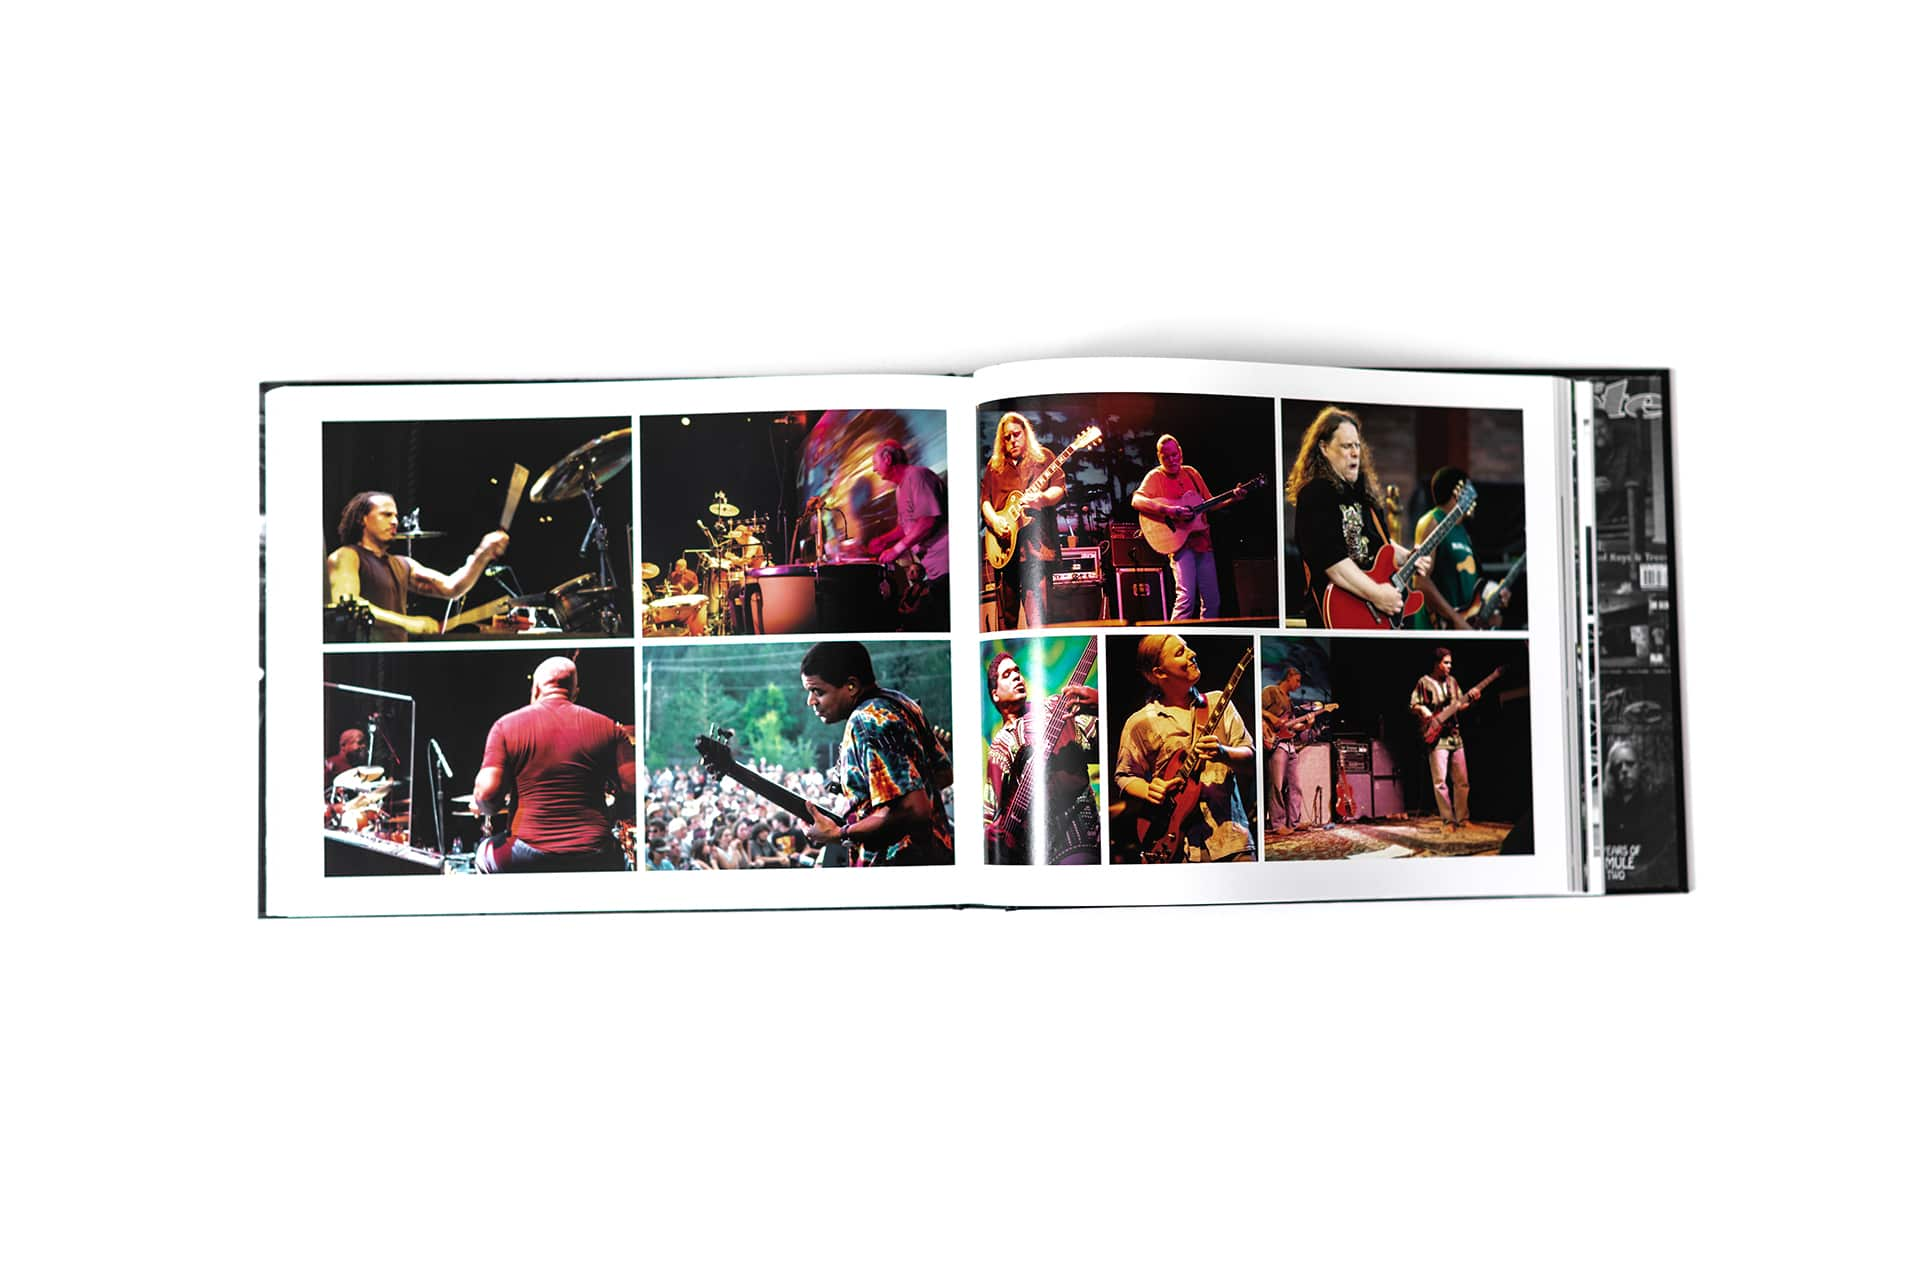 pages showing pictures from